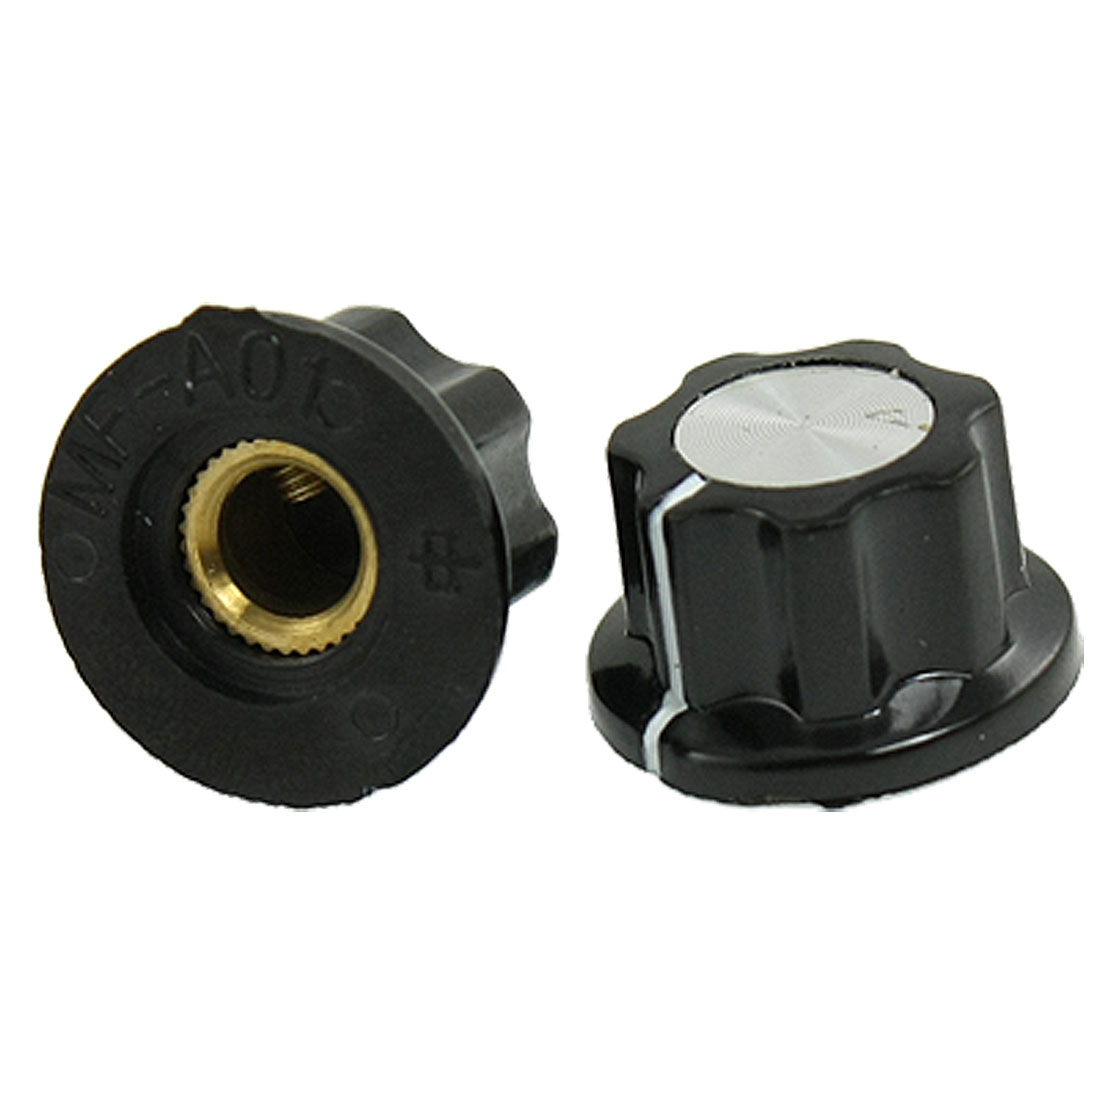 "2 Pcs 15/64"" Shaft Hole Dia Potentiometer Control Volume Knob"